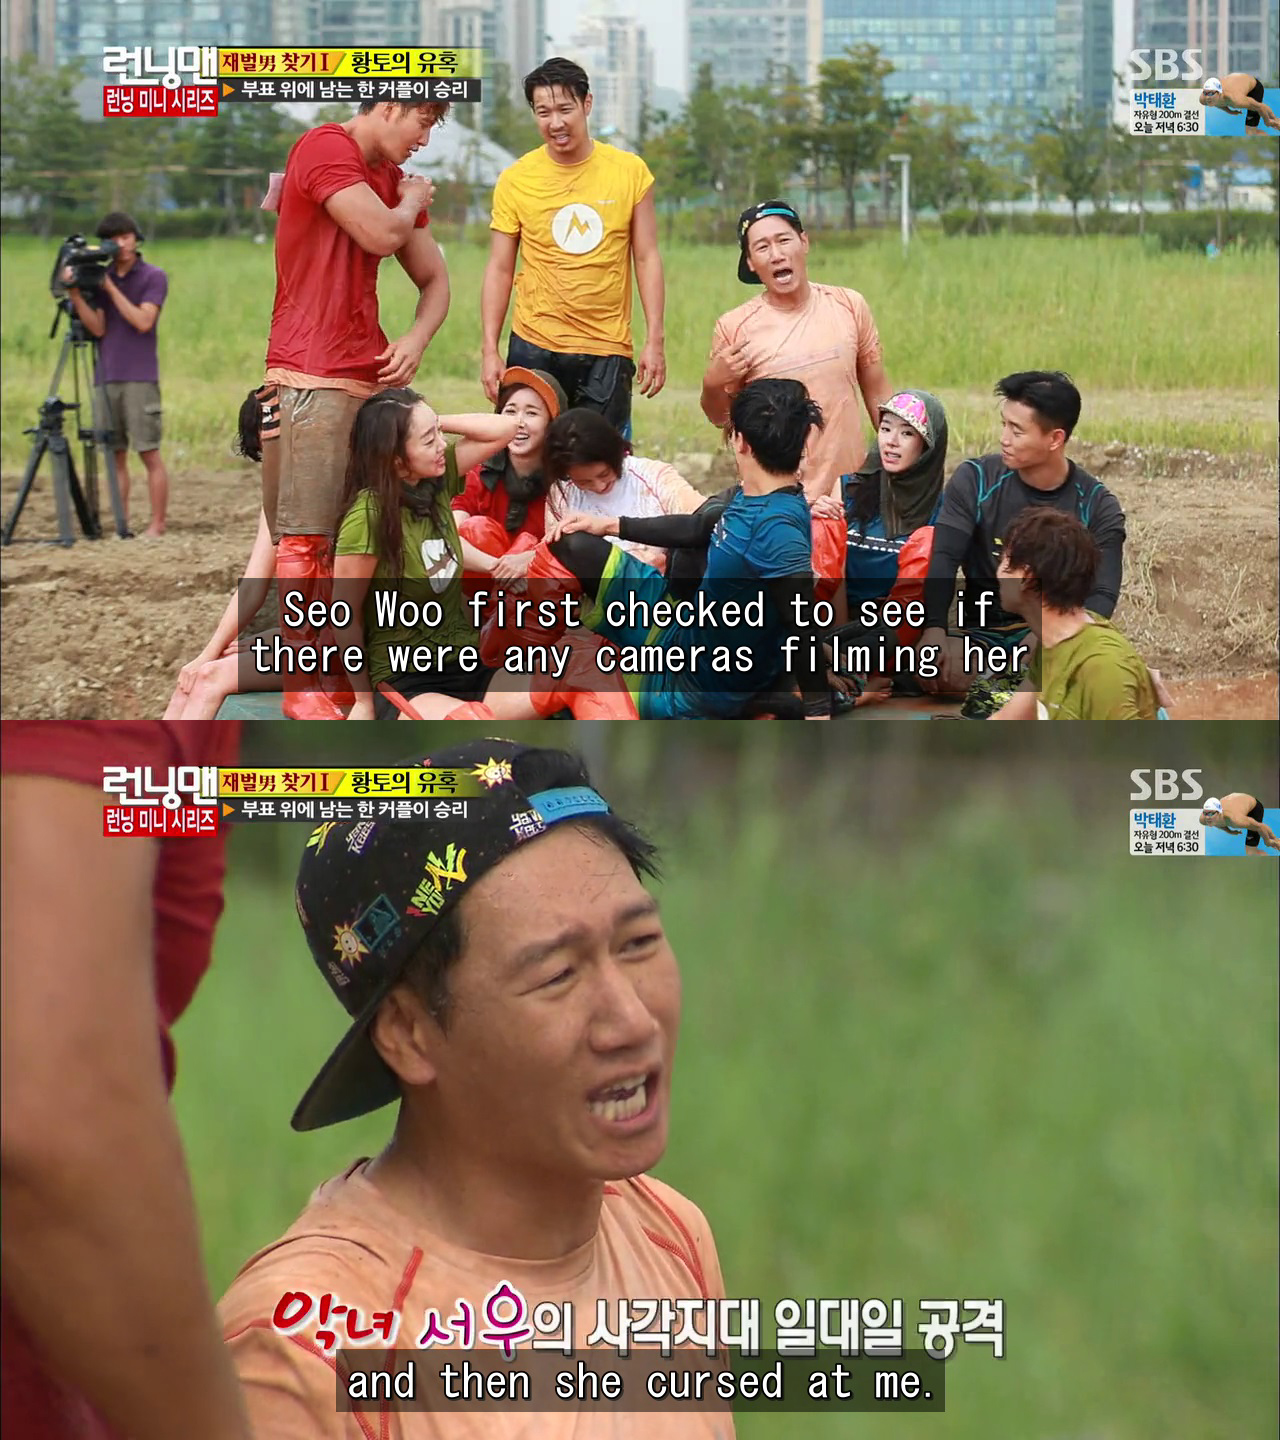 Image of: Kwang Soo But Before Long The Five Guests Proved Themselves To Be Funny And Unpredictable The Format Of The Games Allowed For The Couples To Change Which Avoided If By Japan Rssingcom If By Japan